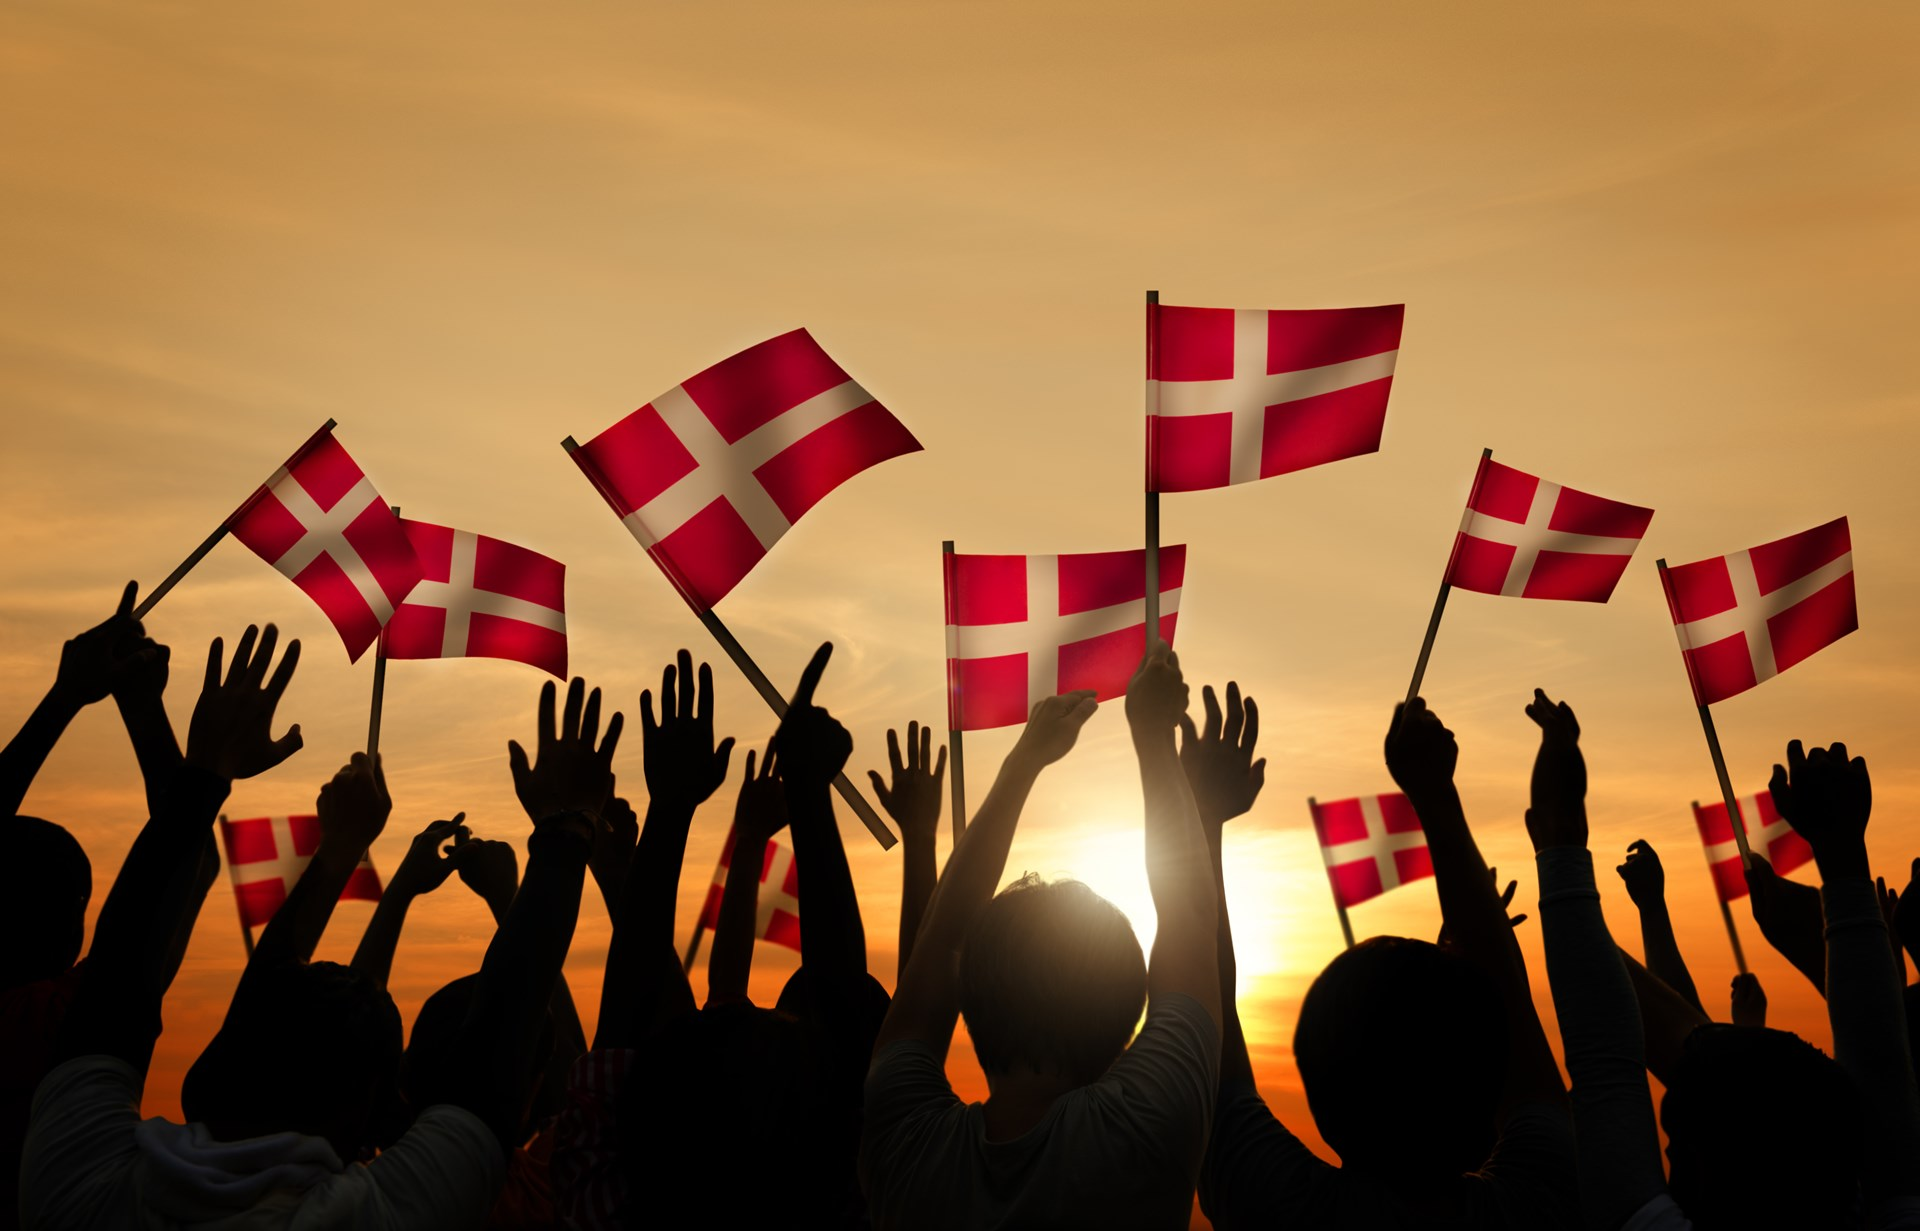 https://fee.org/media/29629/denmark_flags.jpg?anchor=center&mode=crop&width=1920&rnd=131783744600000000